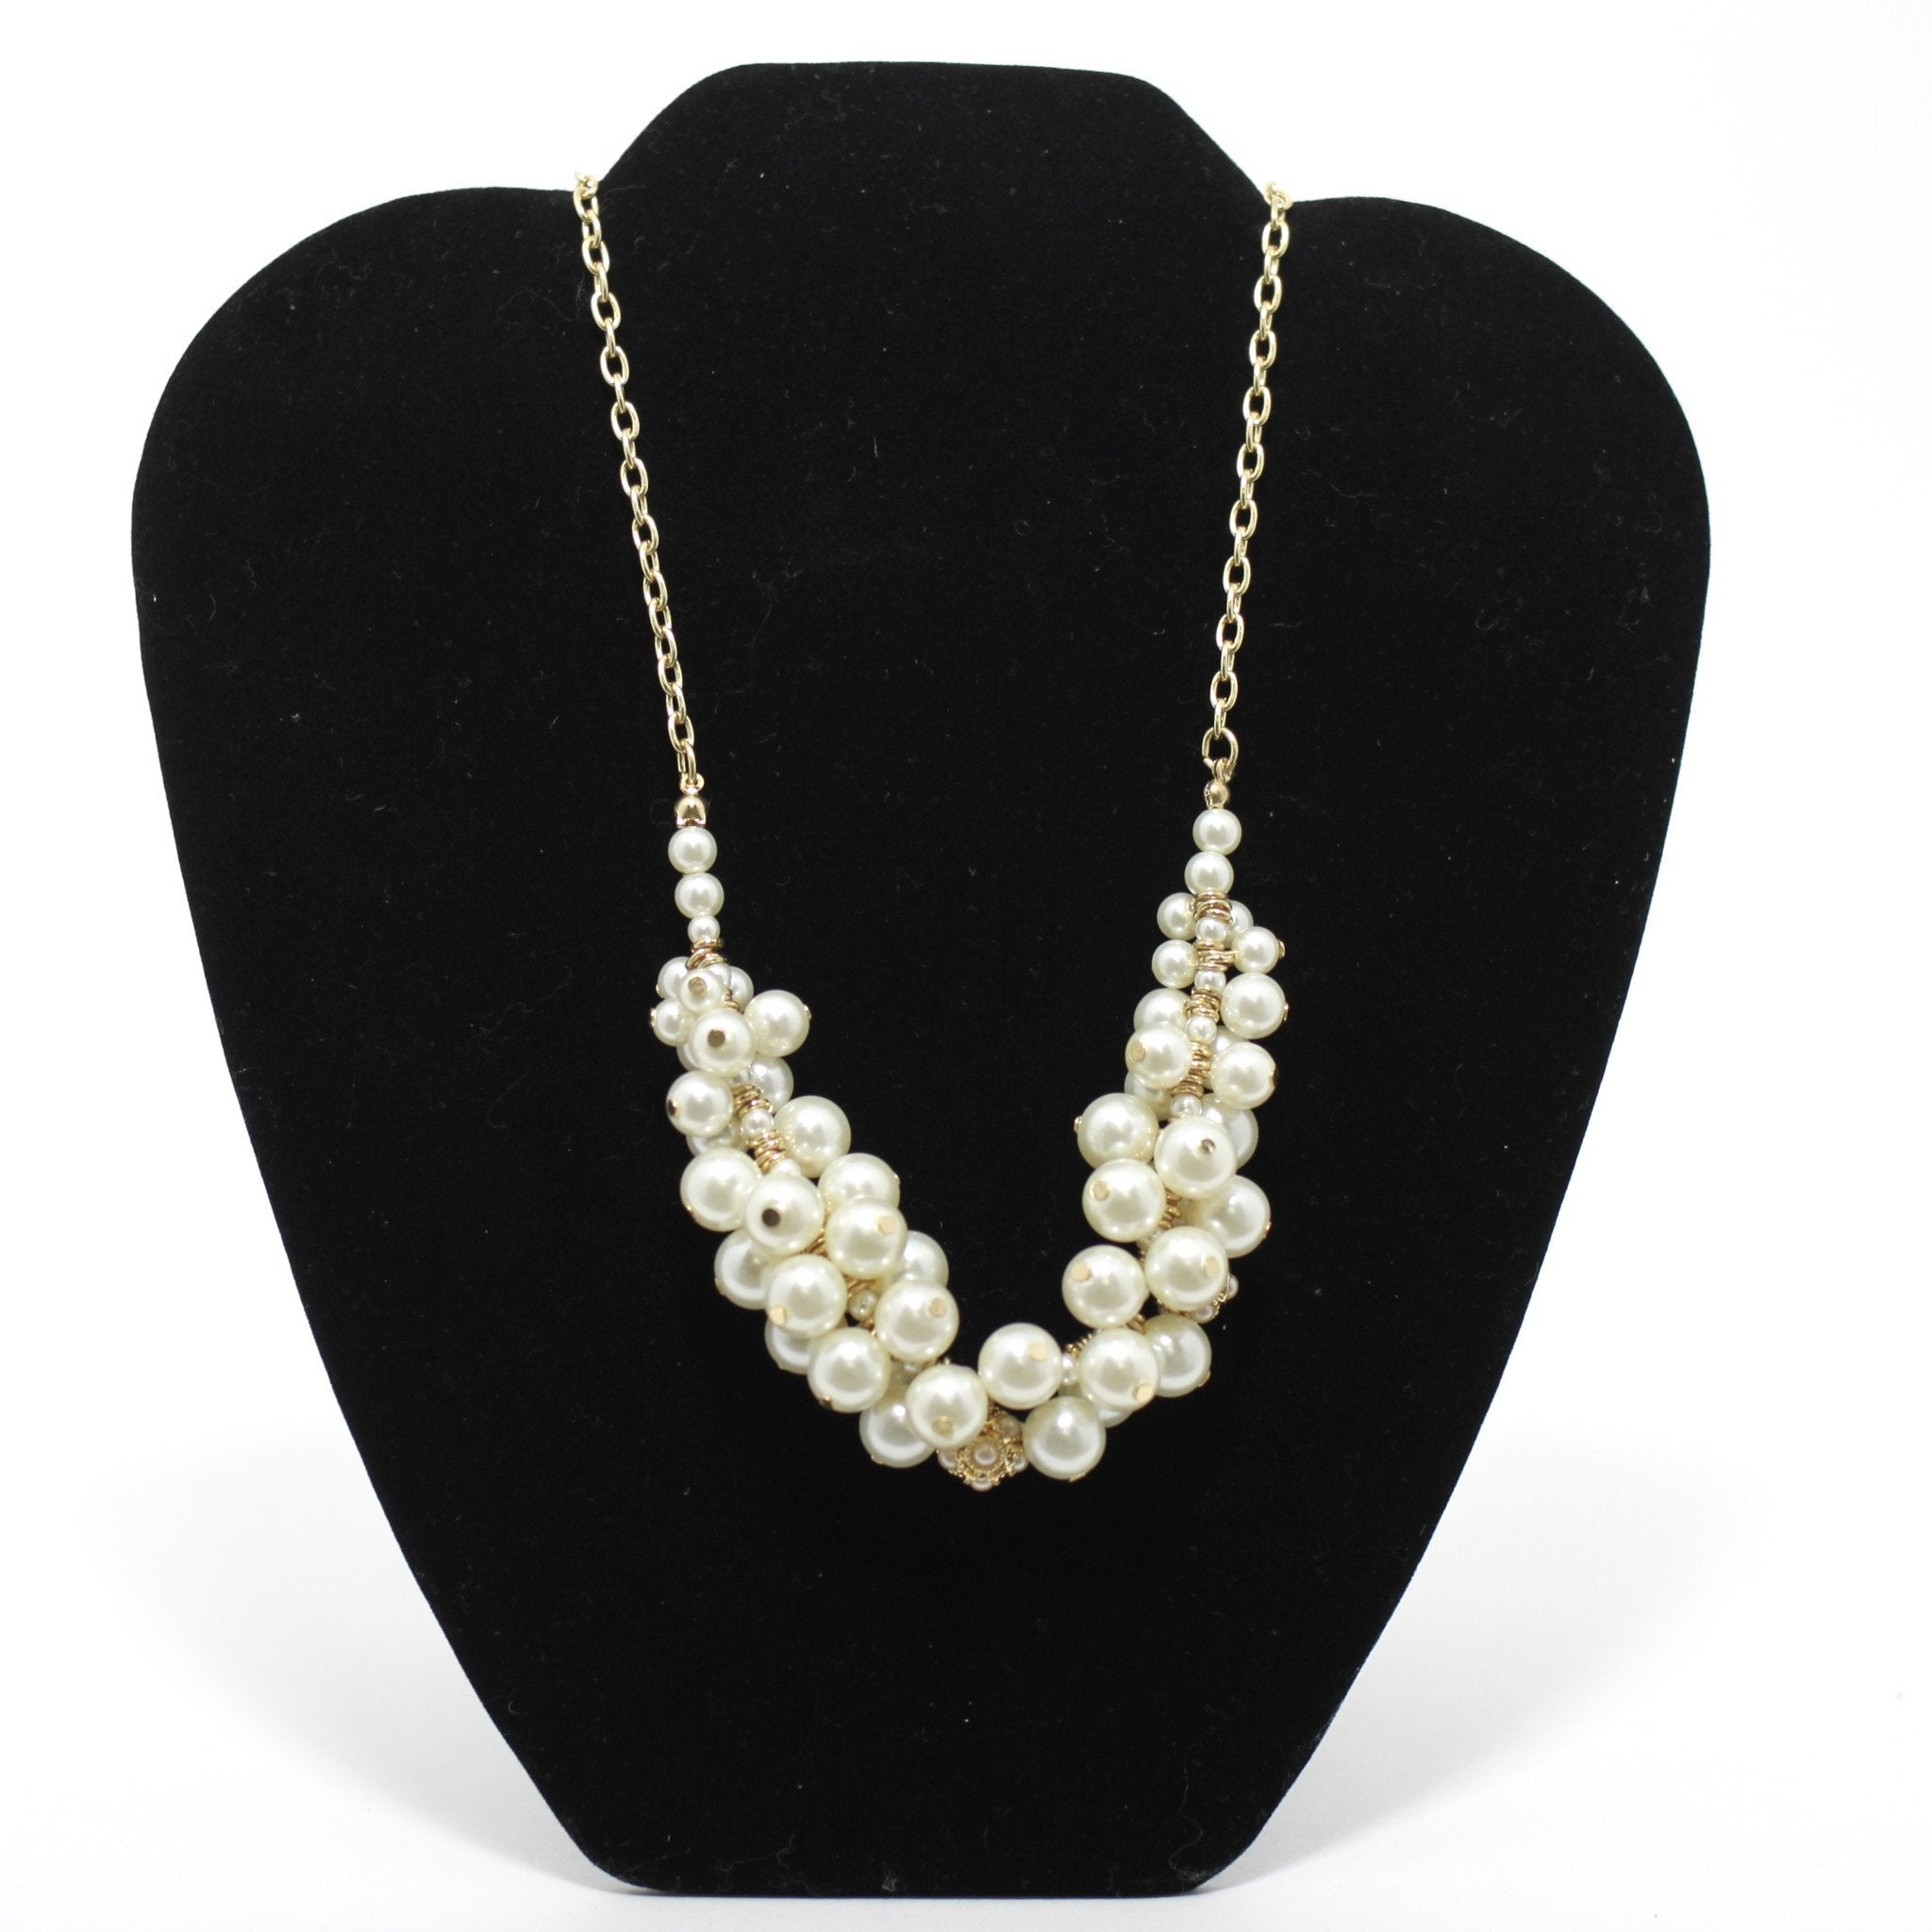 White Pearl & Gold Necklace - Donated From The Designer